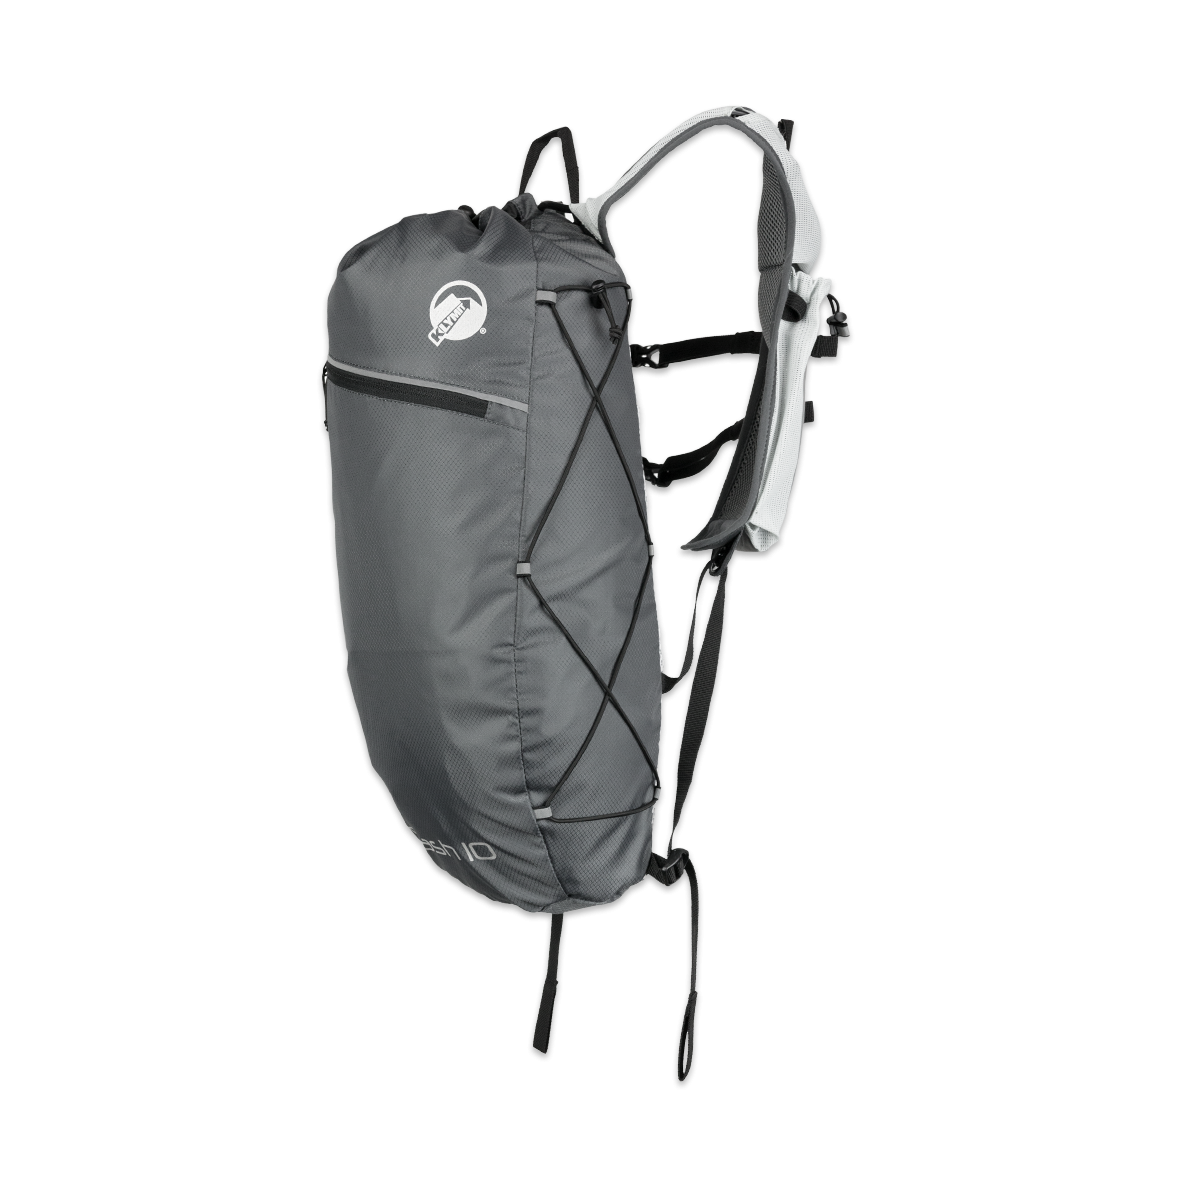 Klymit DASH 10 backpack